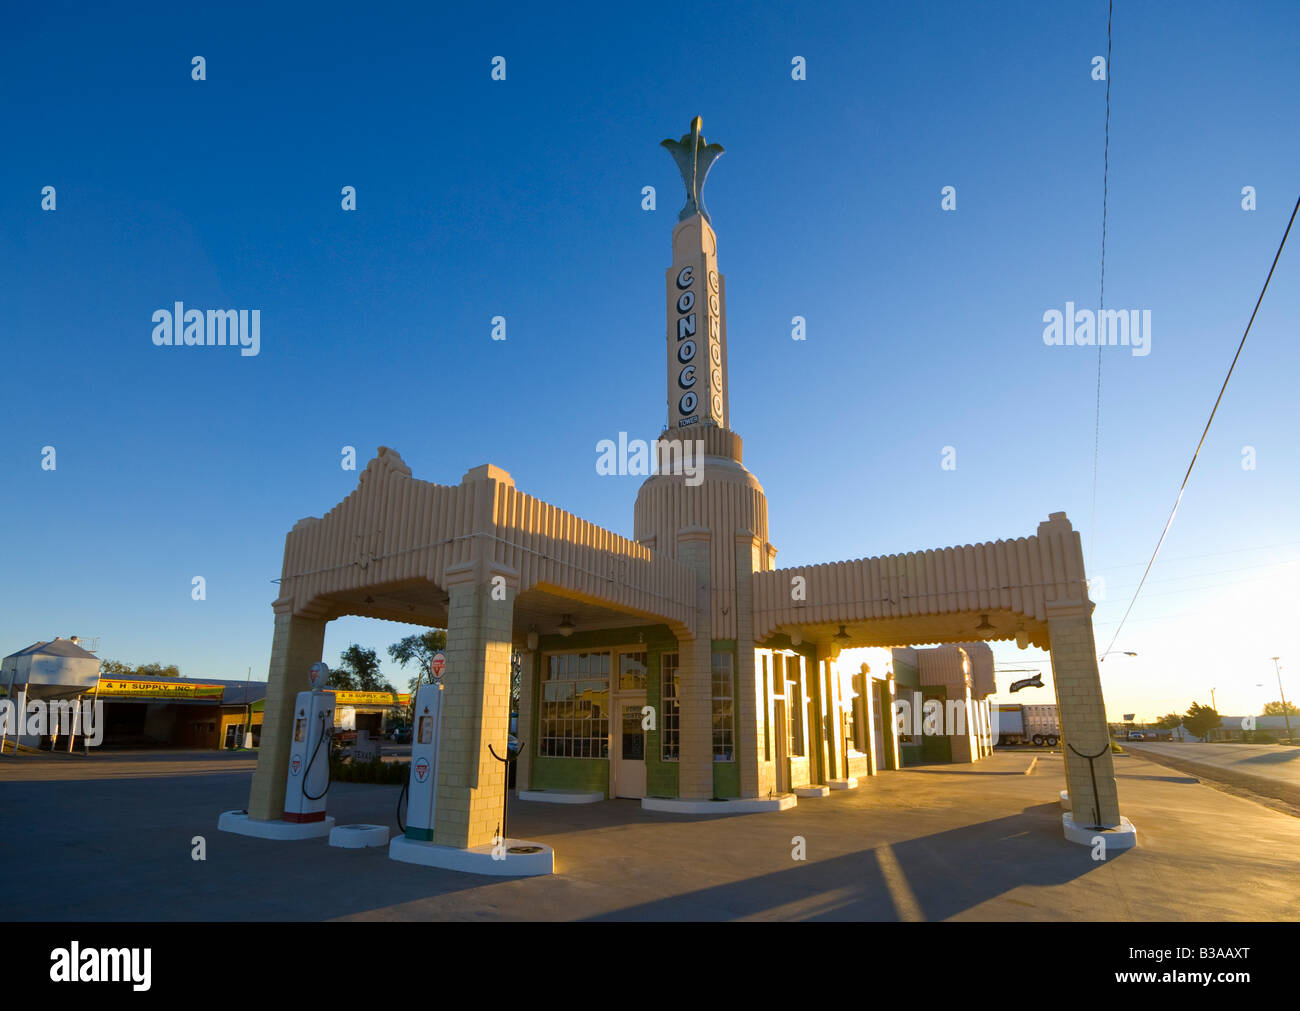 usa texas route 66 shamrock old art deco tower conoco gas stock photo 19282448 alamy. Black Bedroom Furniture Sets. Home Design Ideas